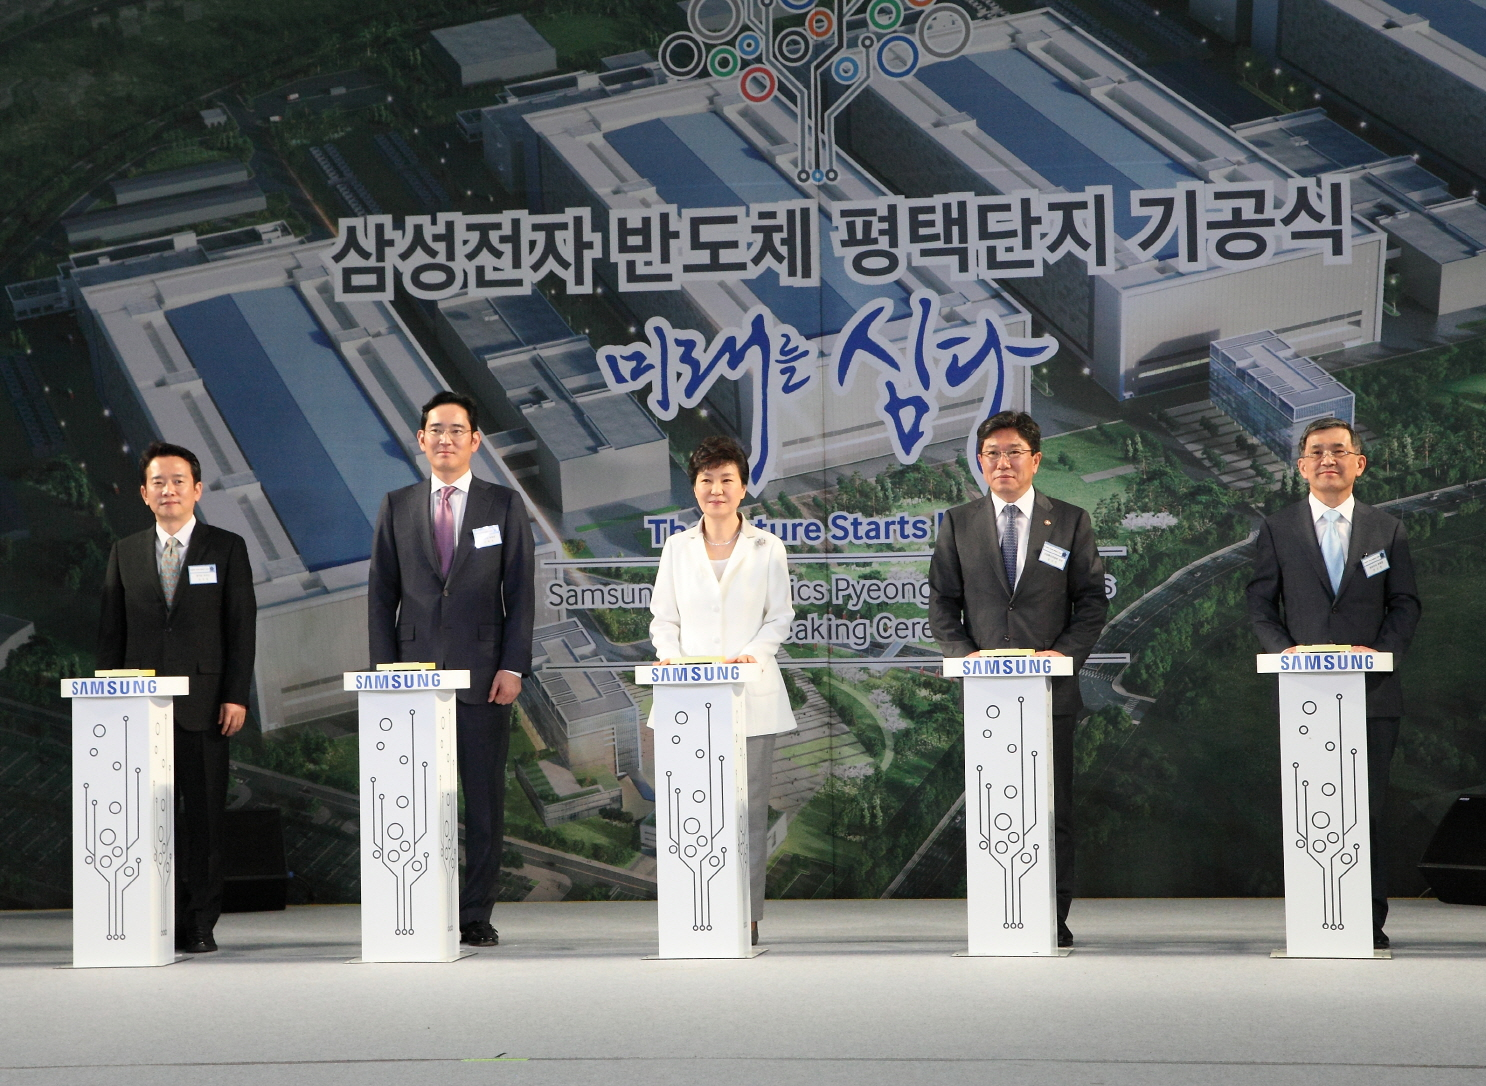 Park Geun-hye (center), president of South Korea, Lee Jae-yong (2nd from left), vice chairman of Samsung Electronics, and other major figures press blasting buttons at the groundbreaking ceremony of Samsung's new Pyeongtaek factory.